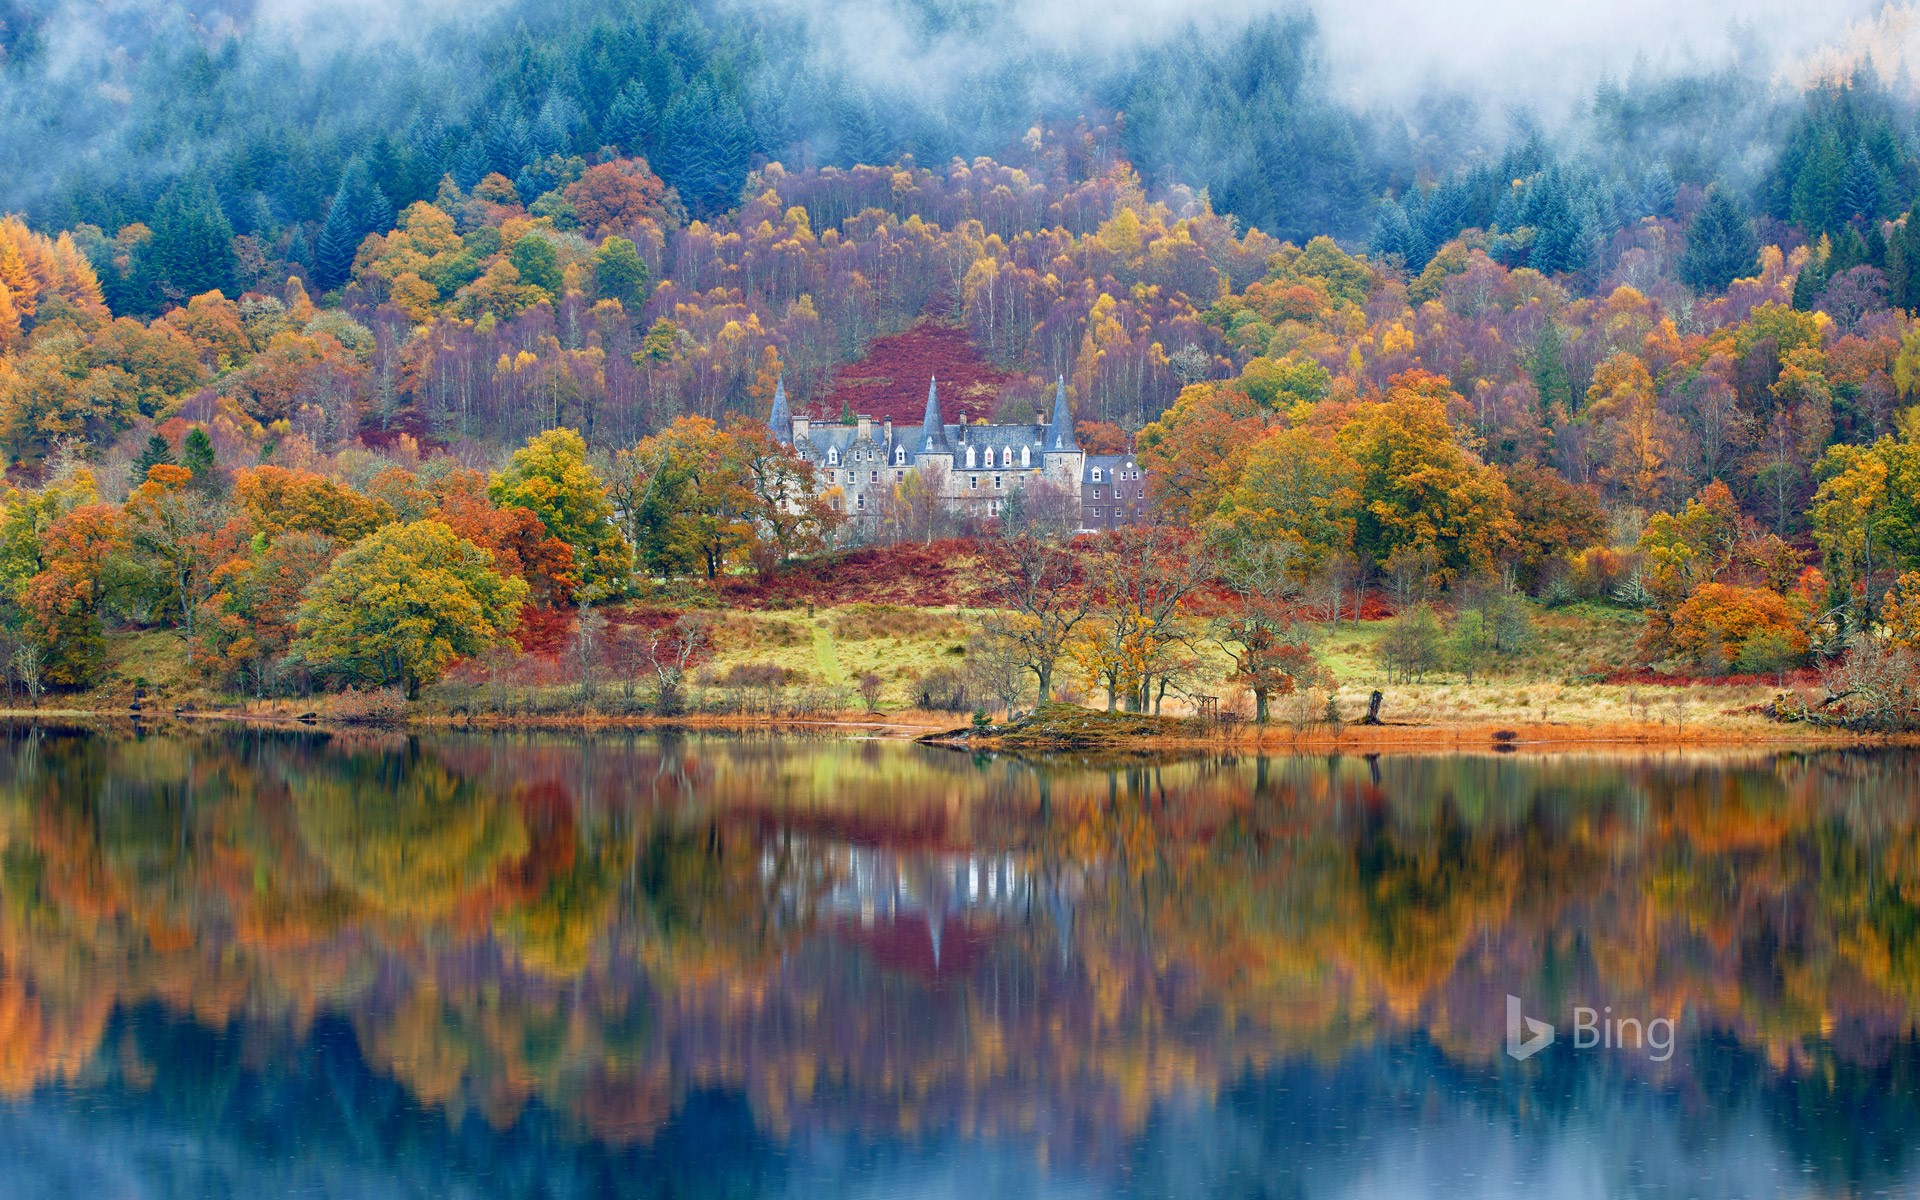 Tigh Mor and Loch Achray surrounded by fog, Perthshire